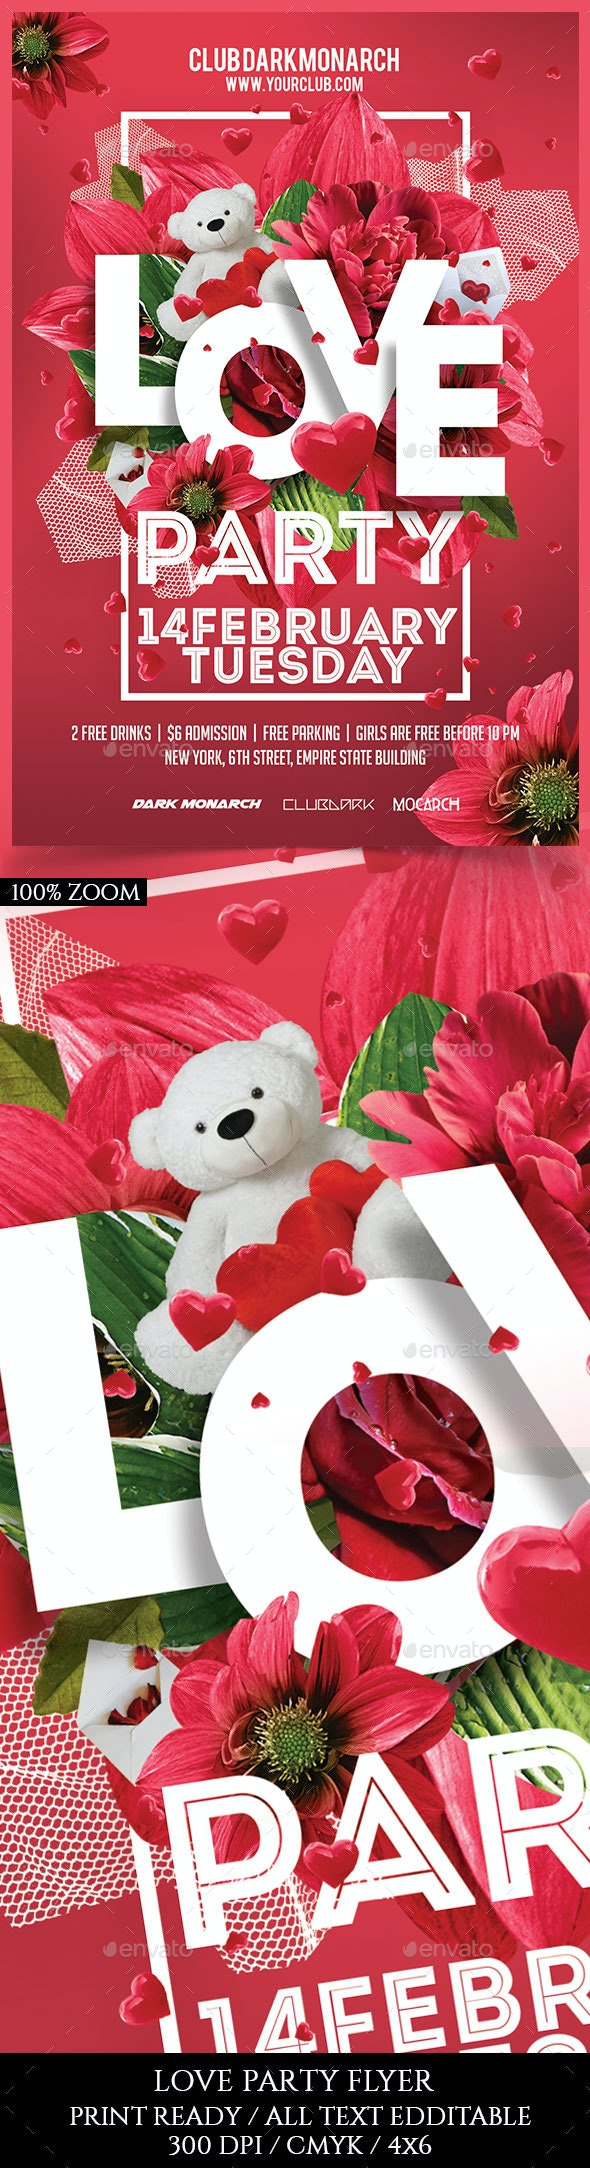 Love Party - Clubs & Parties Events